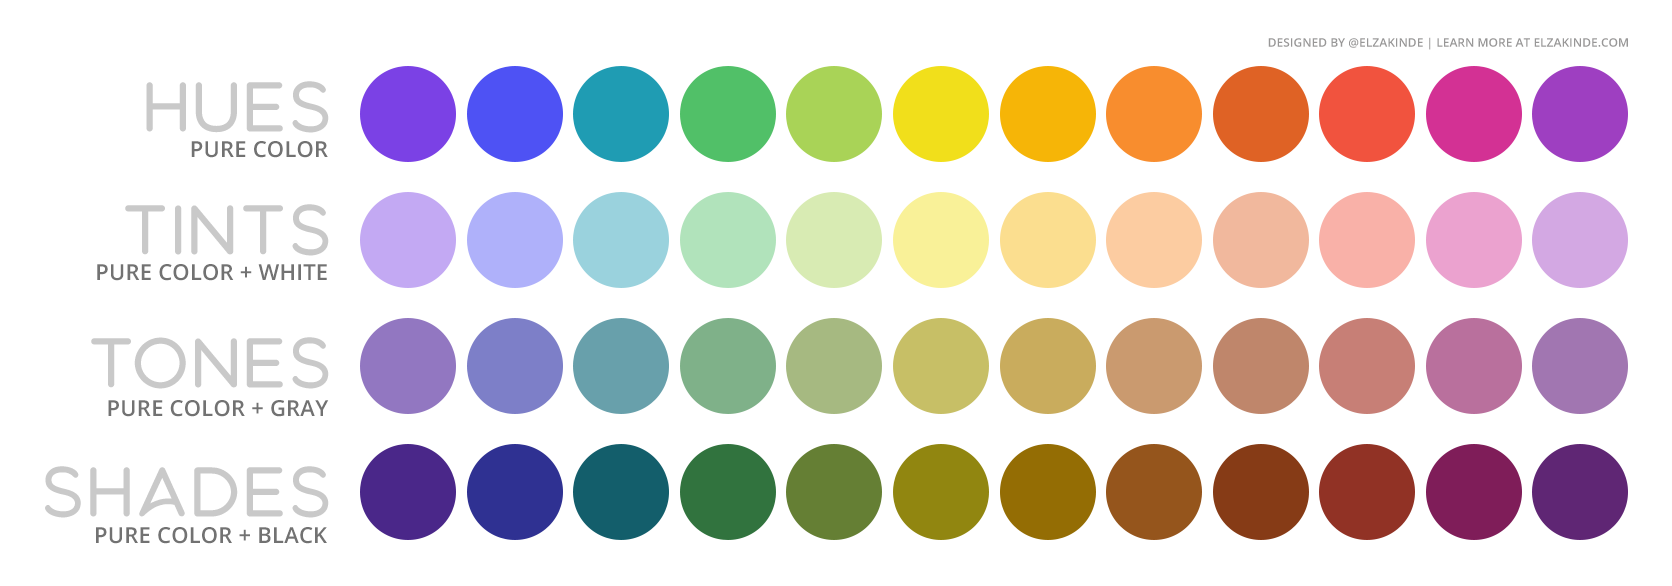 Graphic features four palettes using the twelve colors from the wheel. The top palette represents HUES (pure color), the second TINTS (pure color + white), the third TONES (pure color + gray), and the bottom represents SHADES (pure color + black).